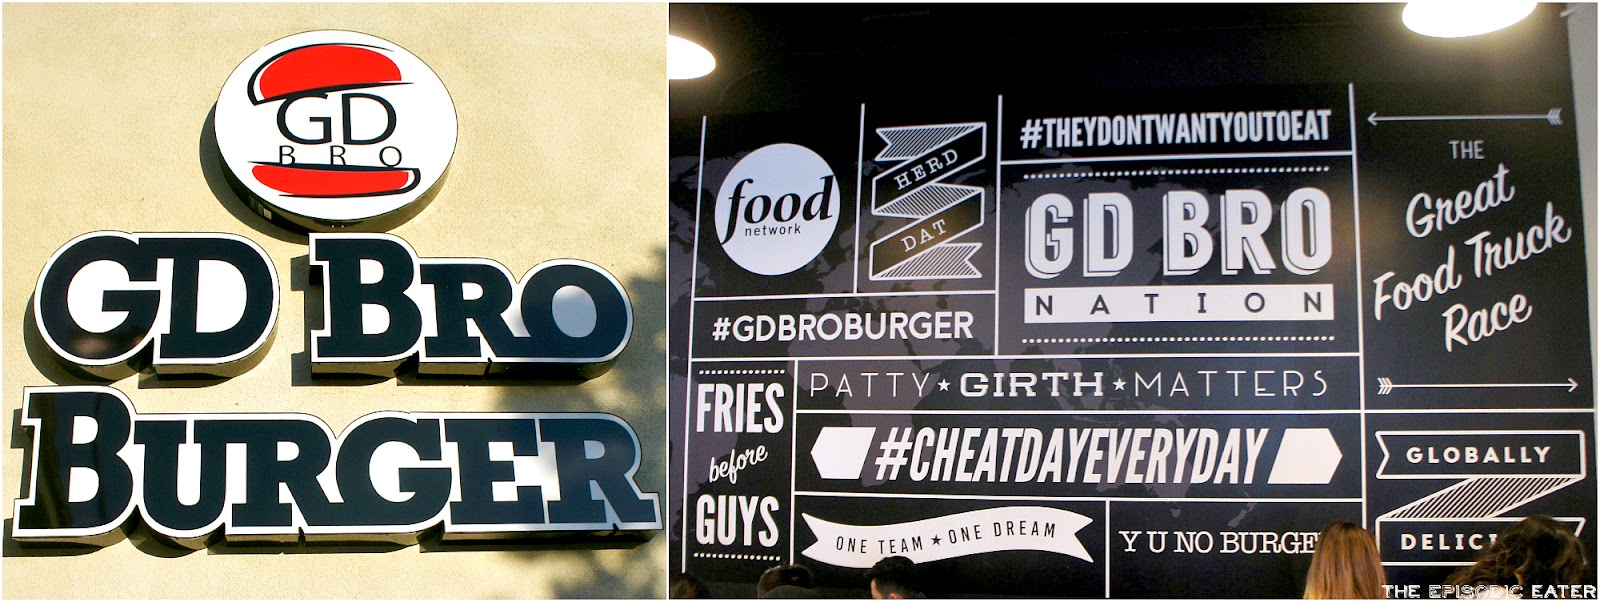 GD Bro Burger (Signal Hill, CA) - Grand Opening on The Episodic Eater!